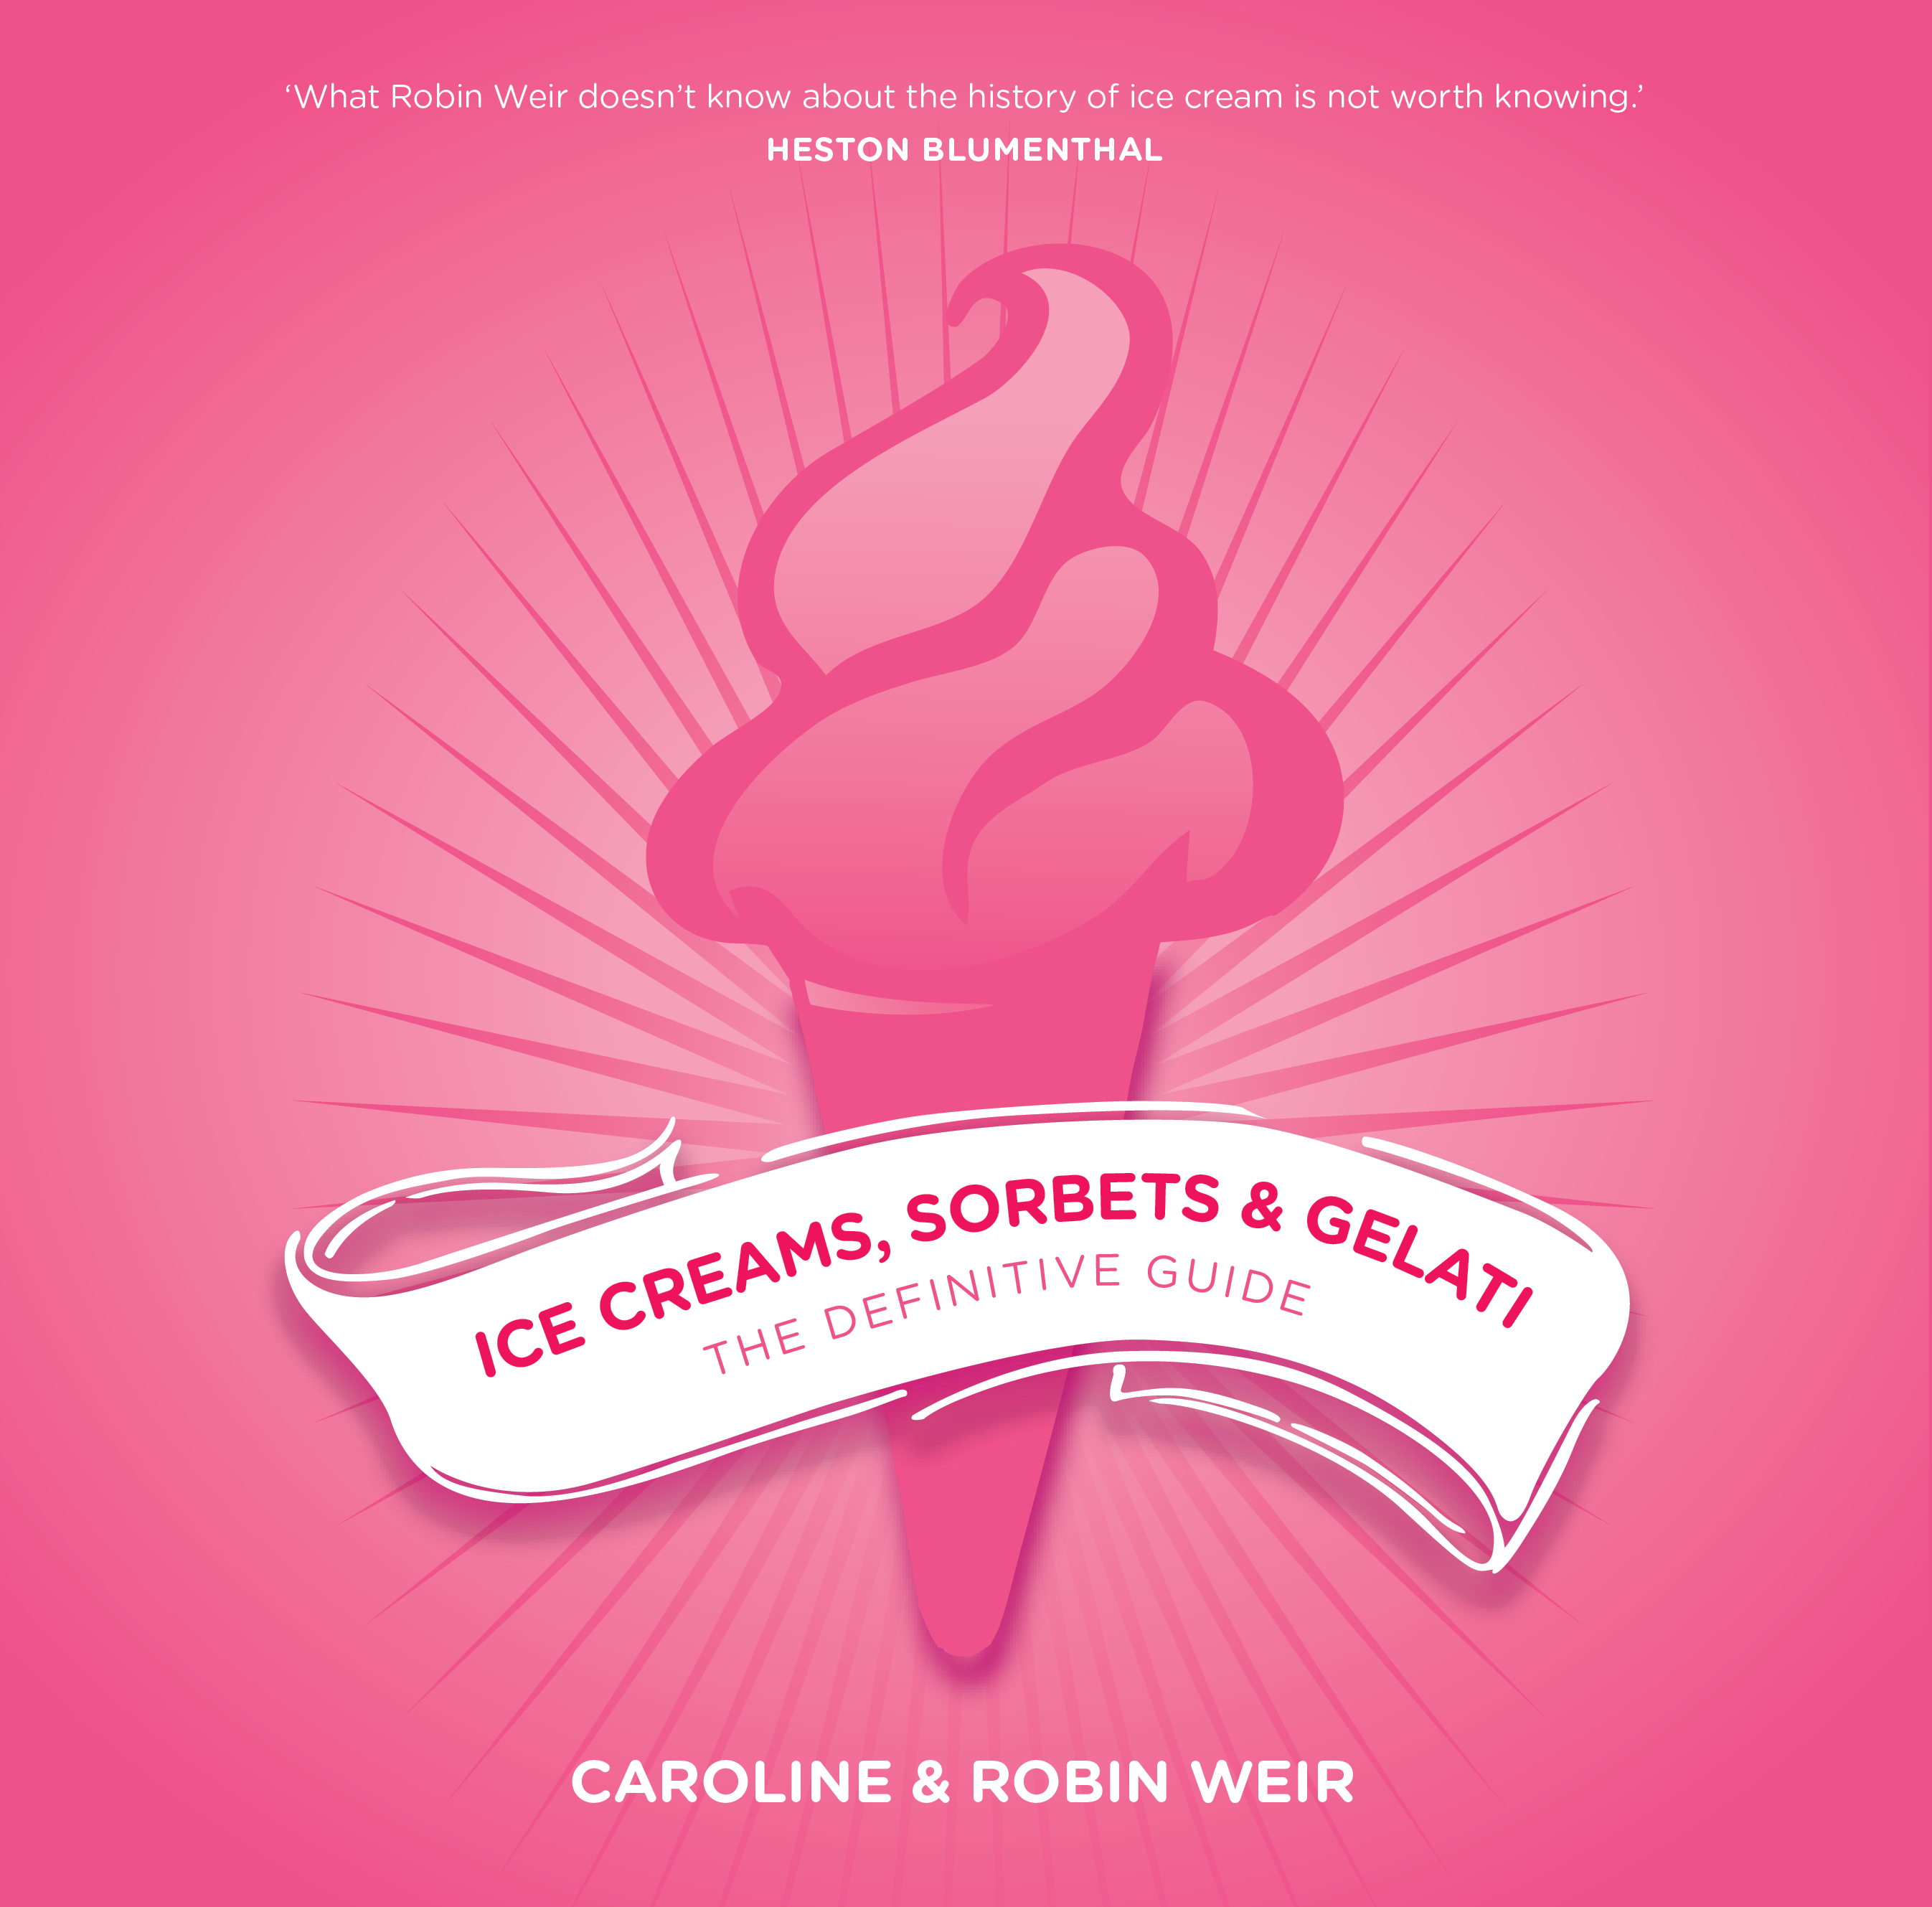 ice creams sorbets and gelati grub street publishing rh grubstreet co uk ices the definitive guide by caroline liddell Definitive Body Club